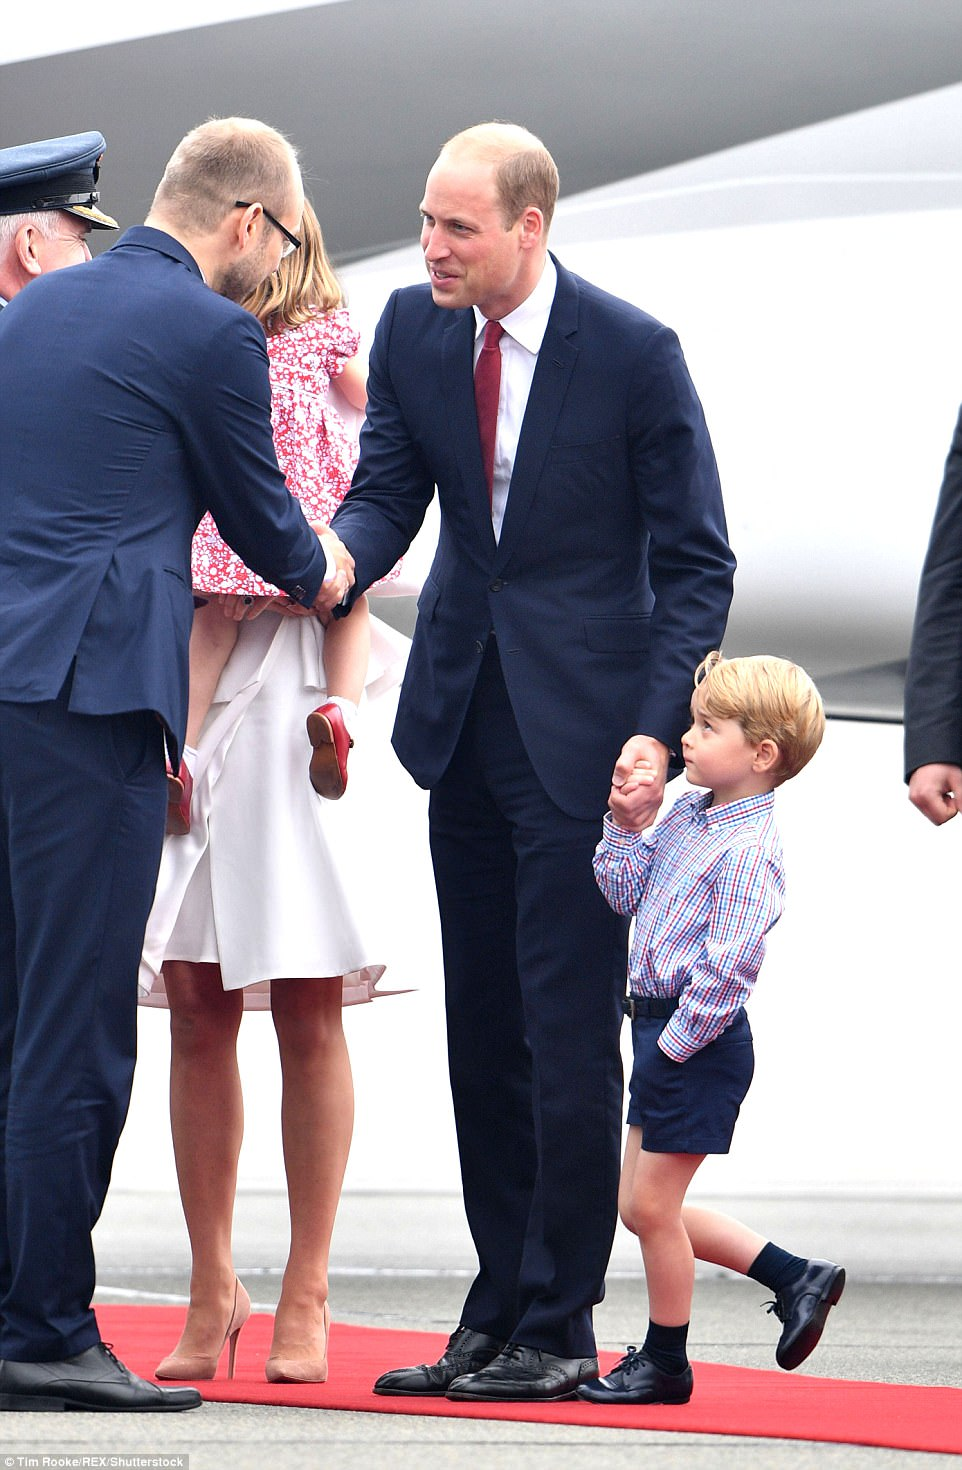 Prince George looked a little in awe as his father and mother were officially welcomed to Poland. This week the family will tour the site of Gdansk's shipyards, the birthplace of Poland's Solidarity movement that helped topple Communist rule